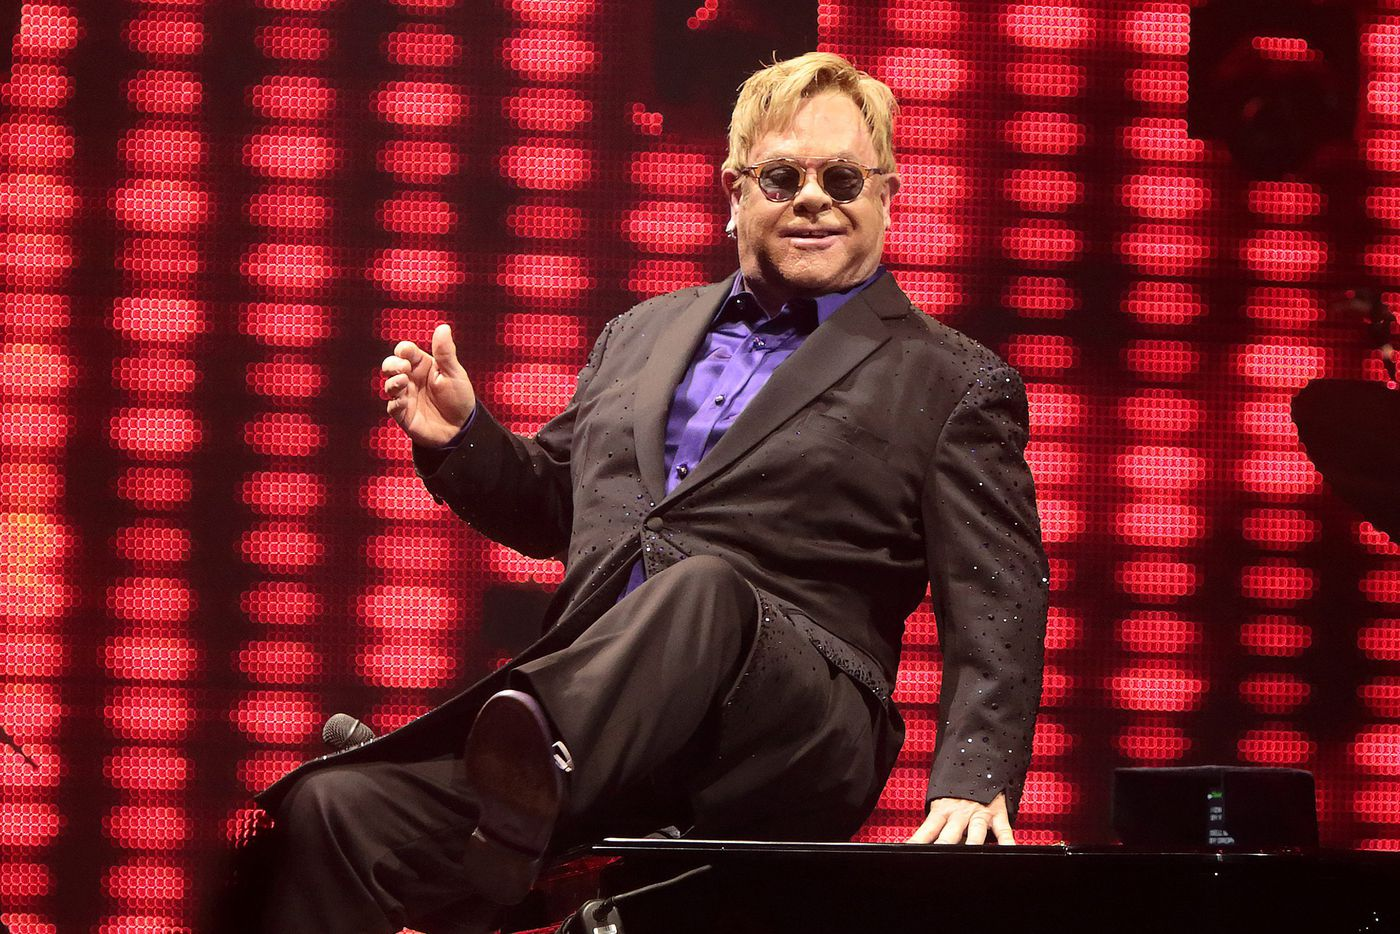 Elton John to Philly: 'Thank you for all the wonderful music you've given the world over so many years'